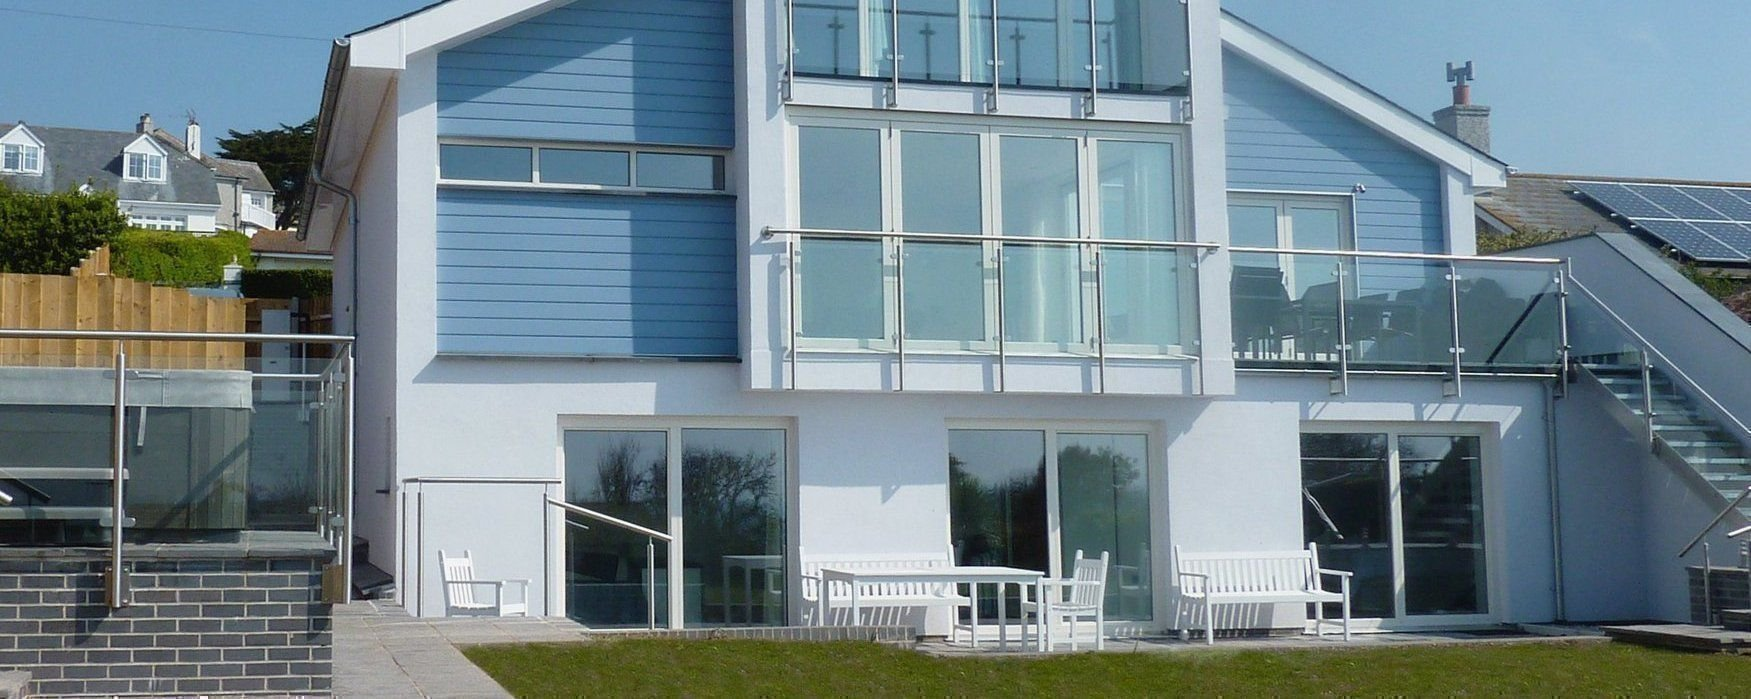 Holiday home property management in Salcombe, South Hams